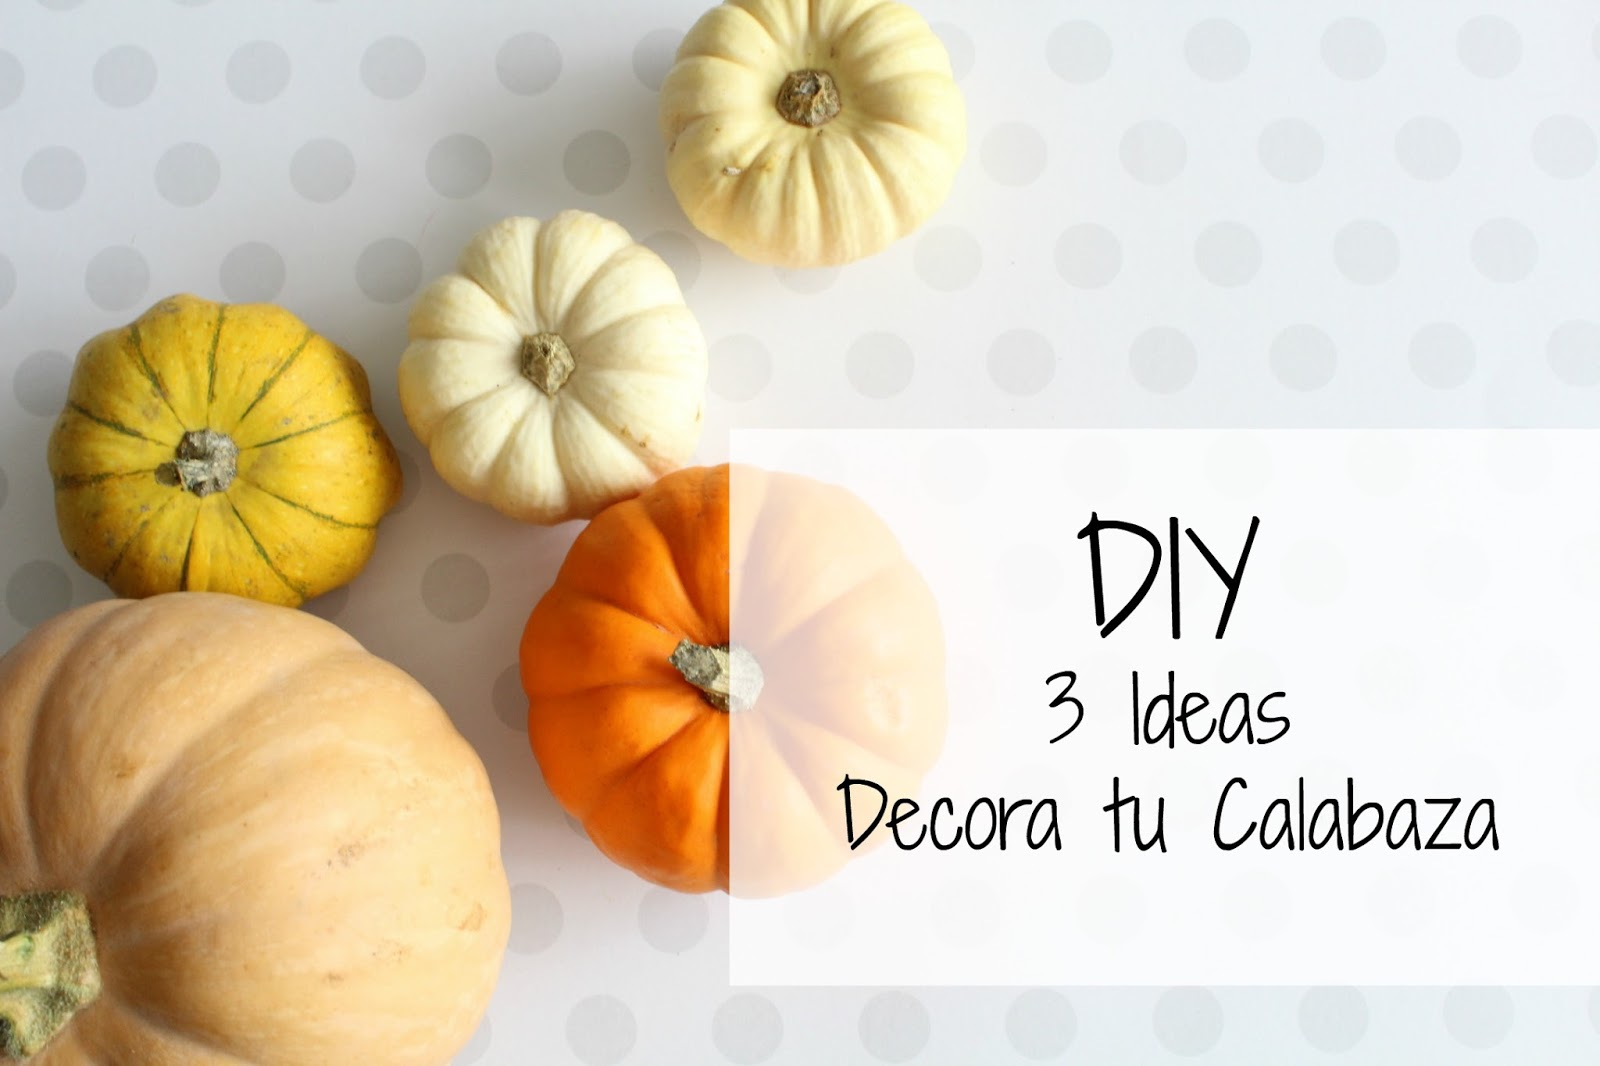 DIY 3 idea Decora tu Calabaza - Handbox Craft Lovers | Comunidad DIY ...